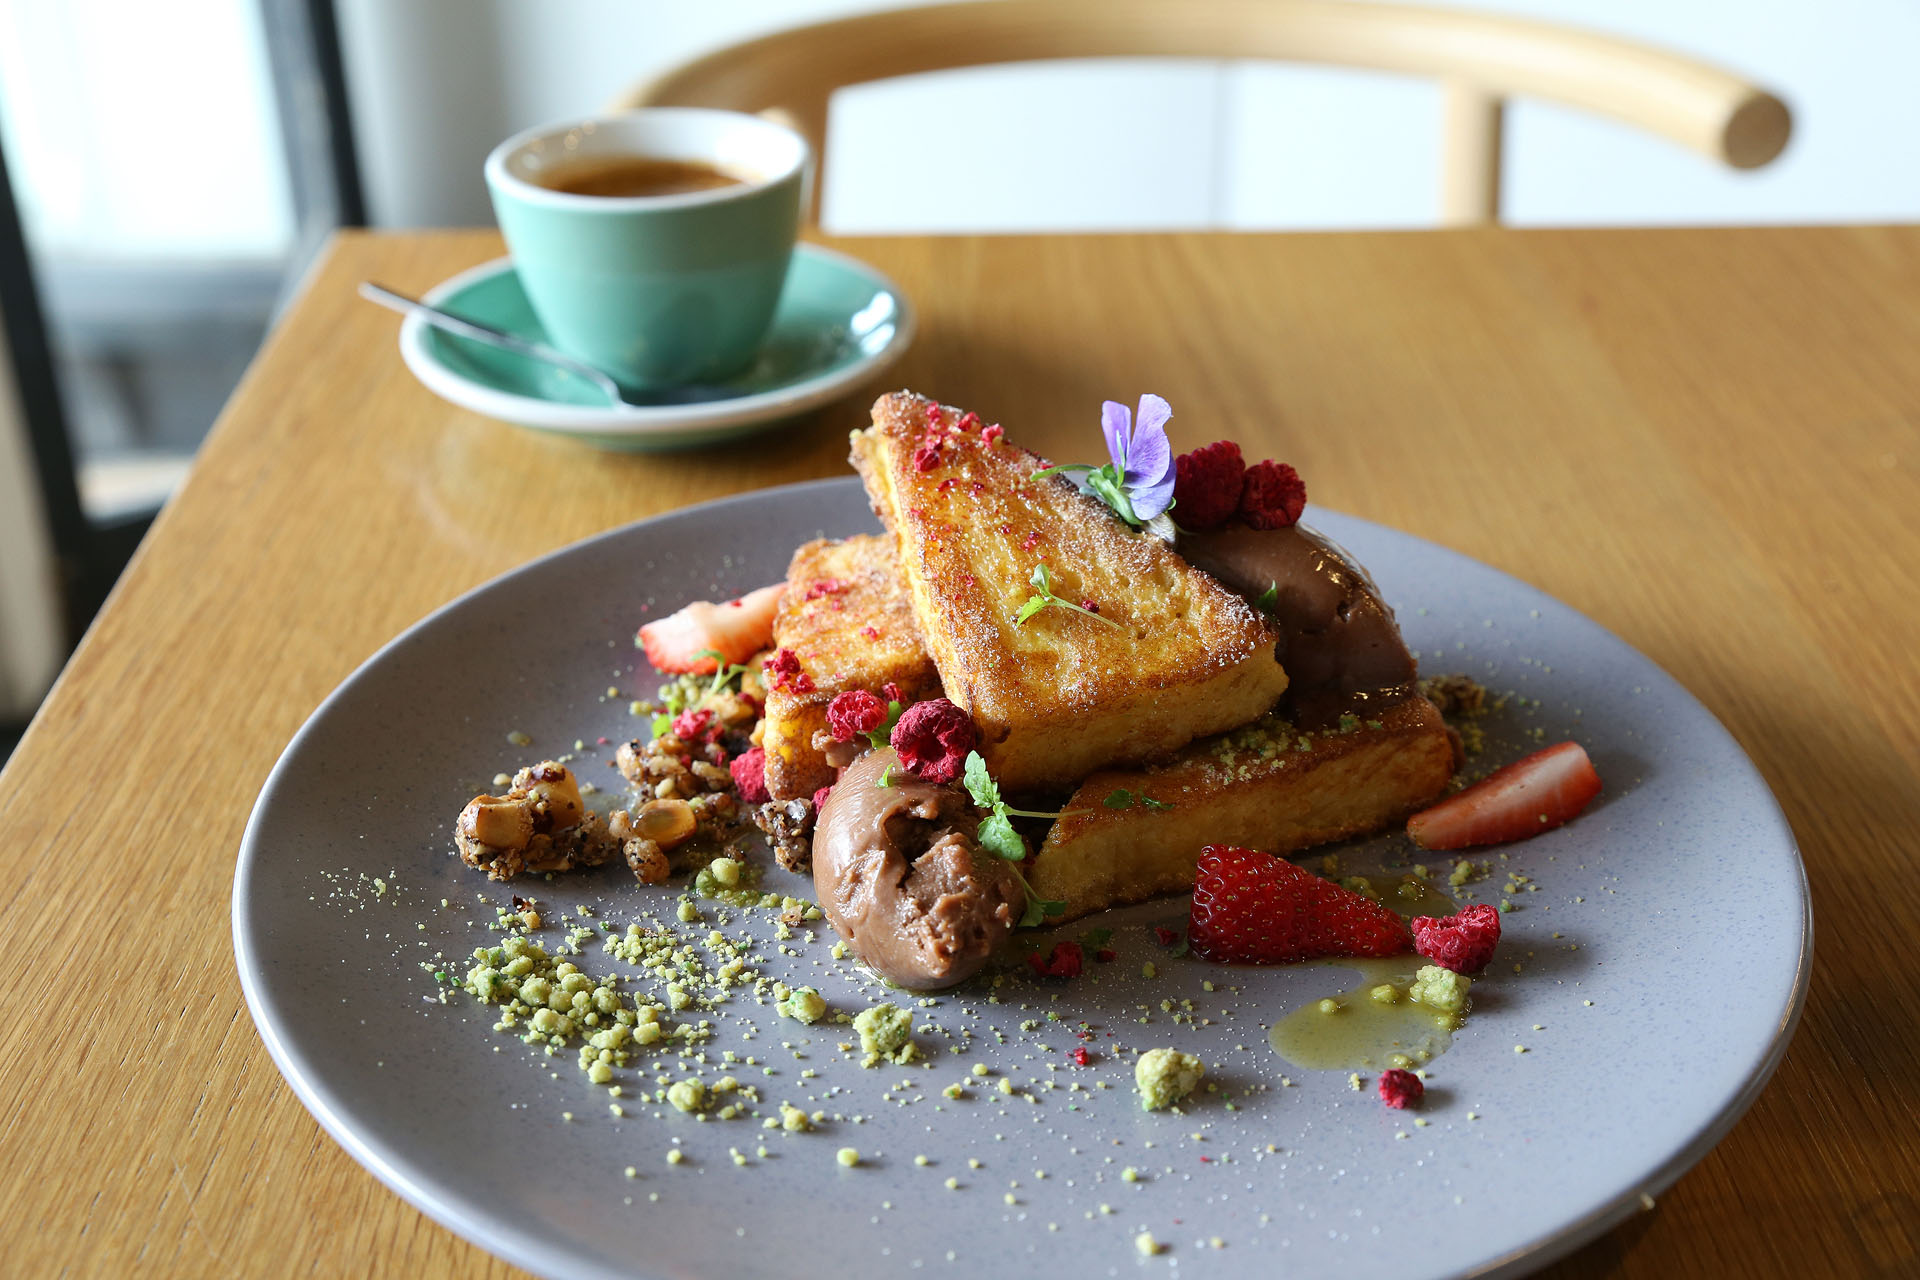 Prospect Espresso - Jaffa Brioche French Toast served w whipped Nutella mascarpone, citrus segments, orange syrup, freeze dried raspberry, matcha soil and hazelnut crumble ($18.50)